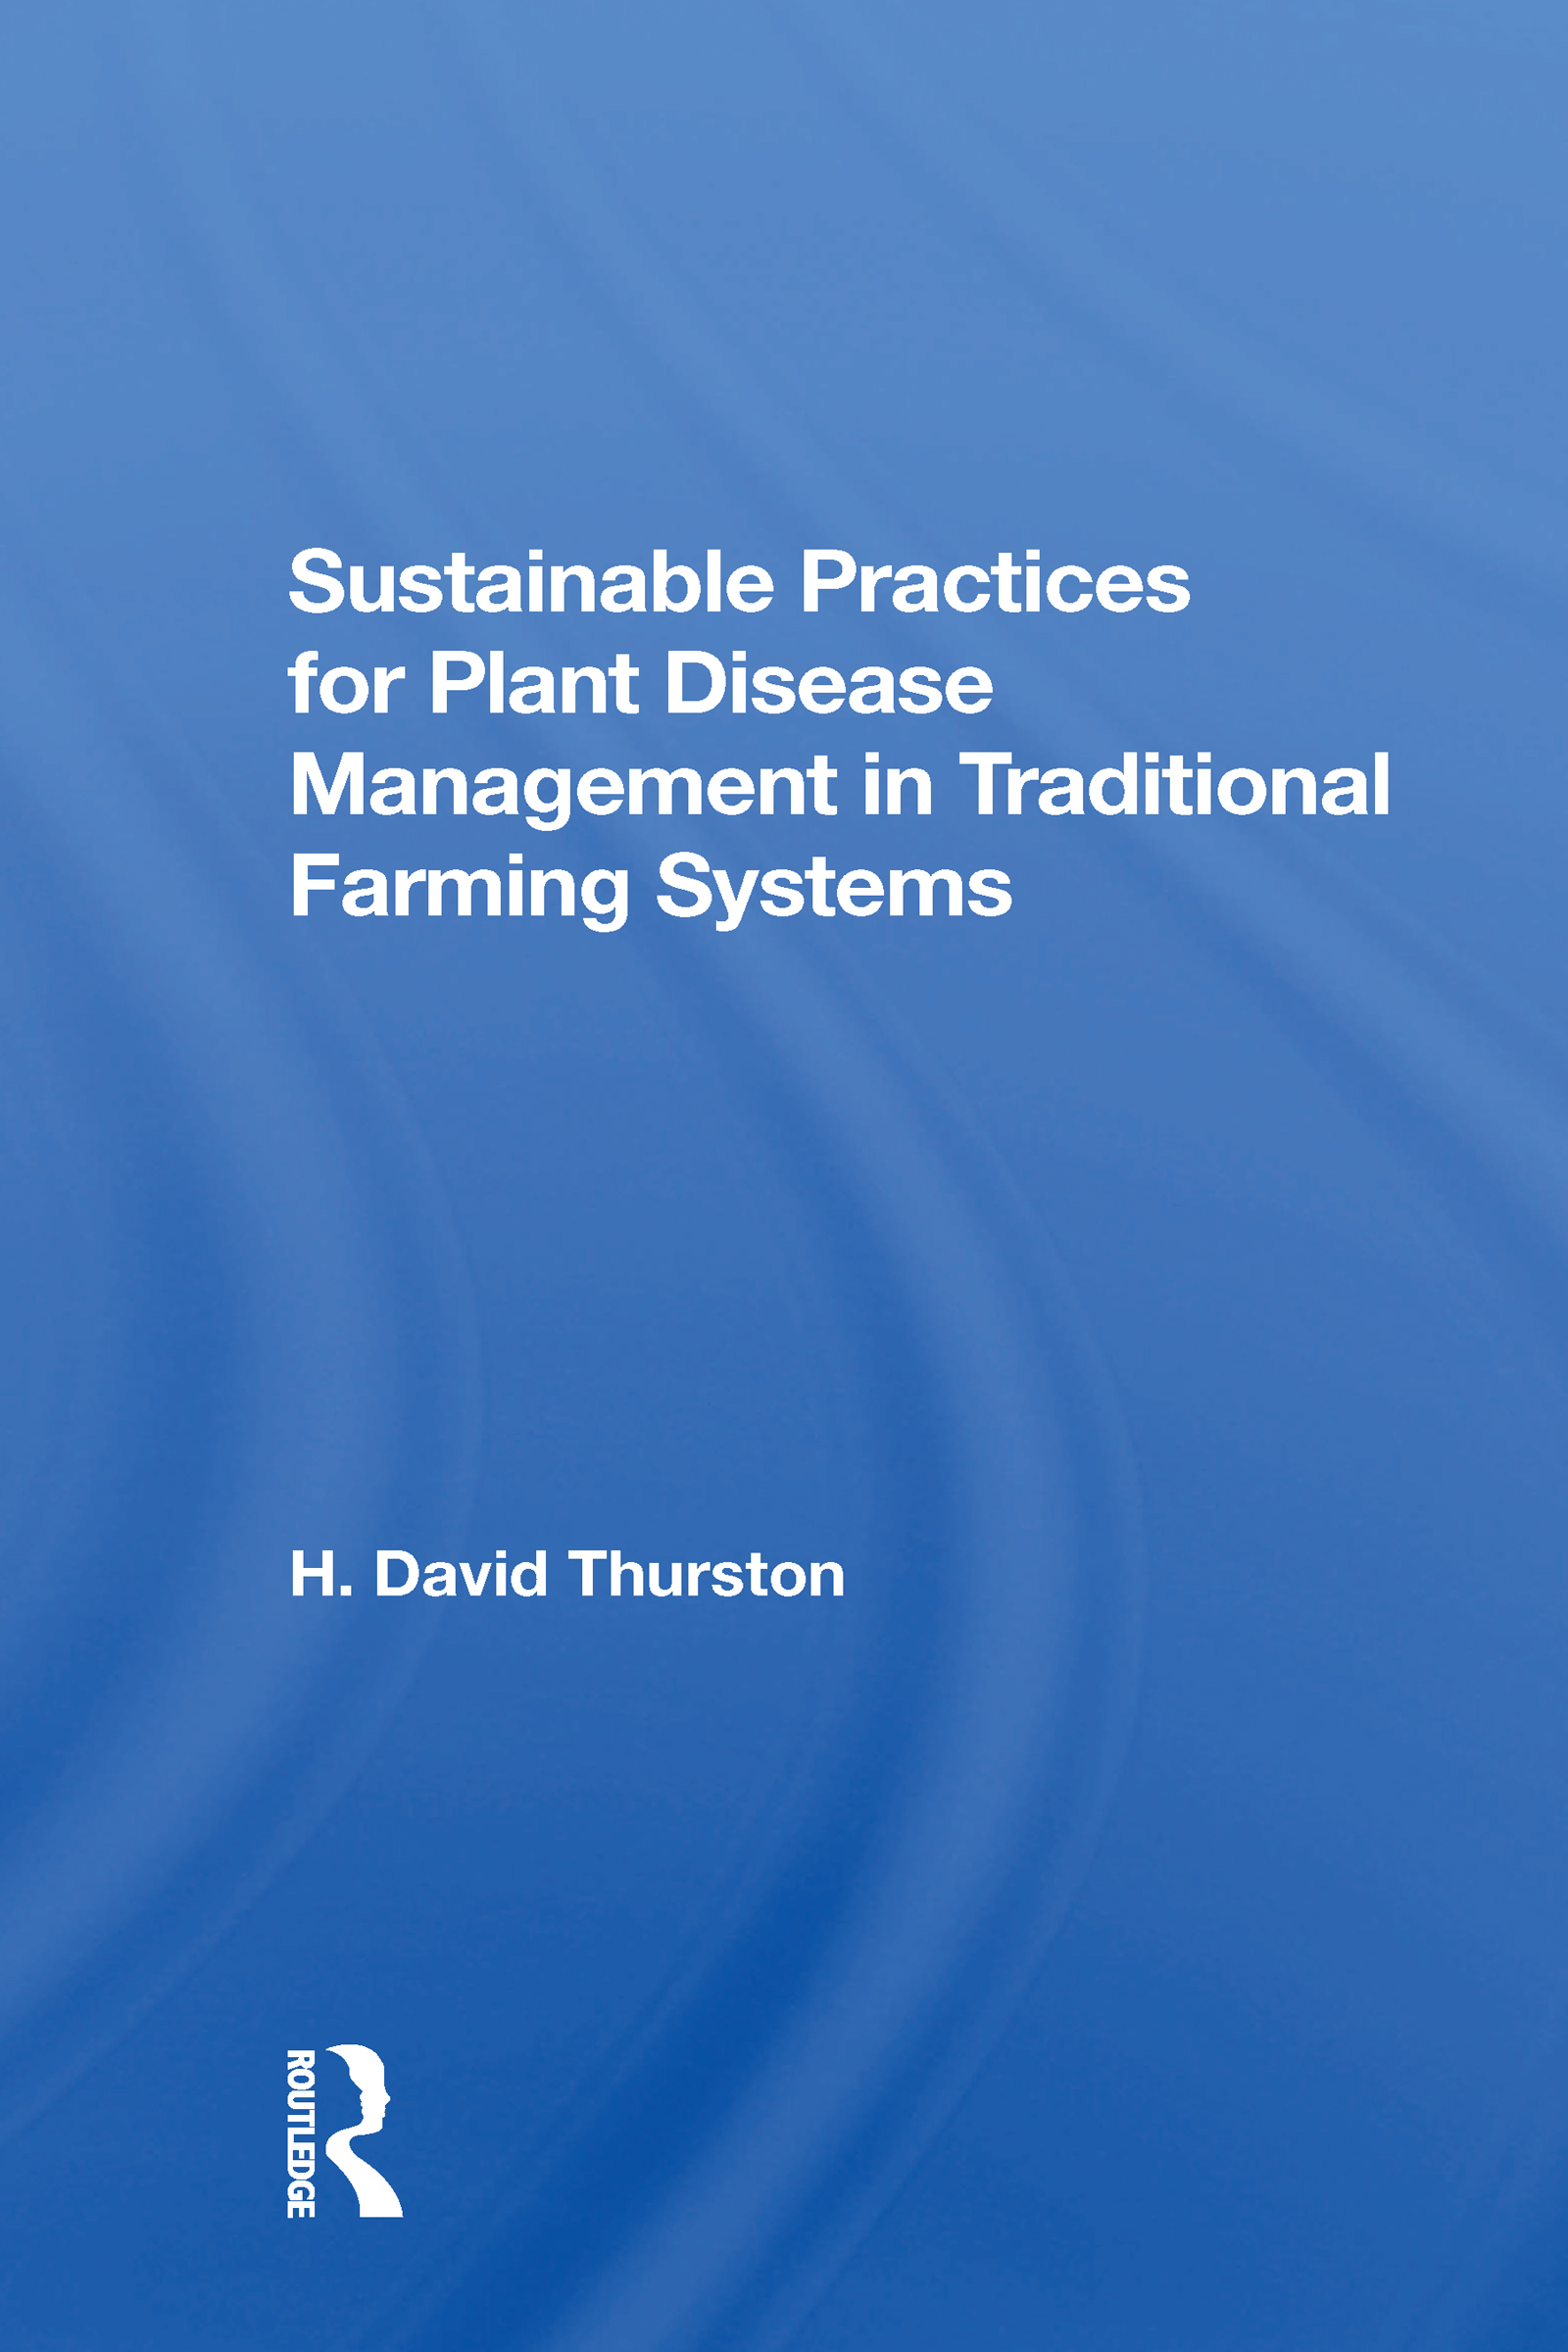 Sustainable Practices For Plant Disease Management In Traditional Farming Systems